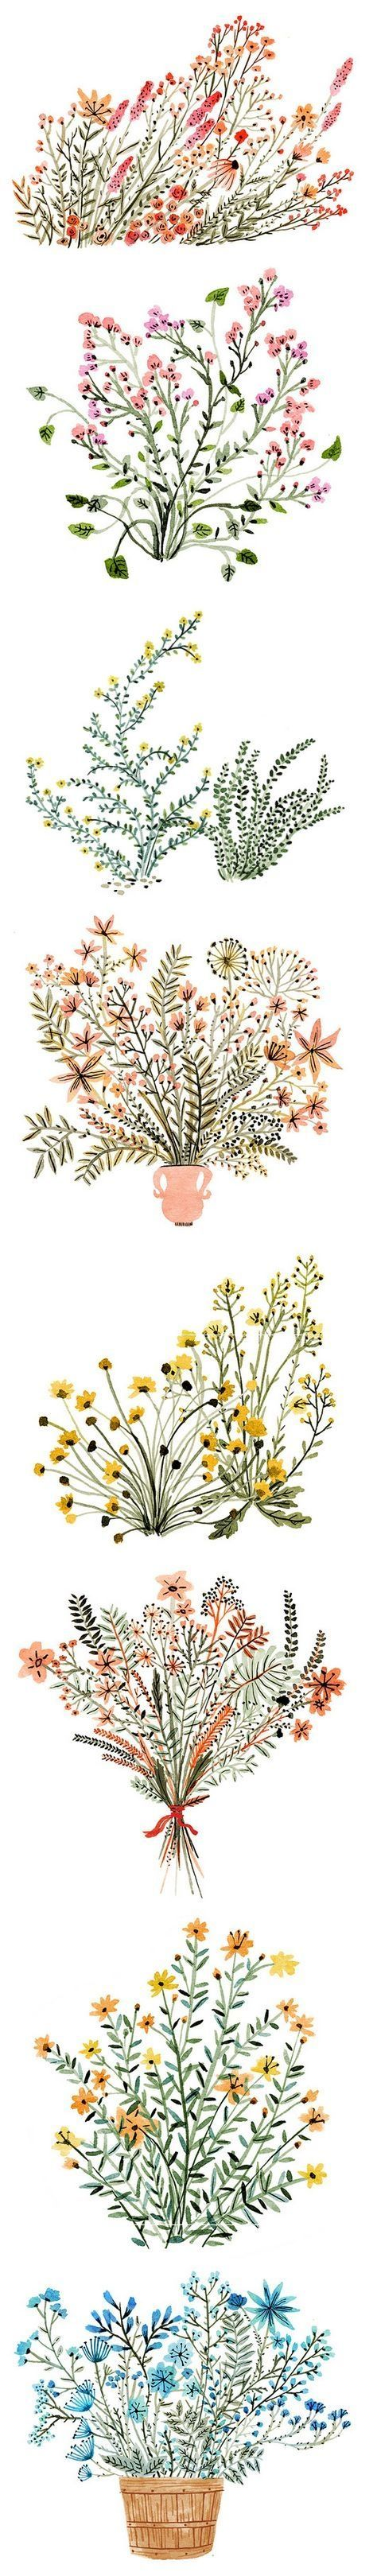 Dainty watercolor flowers, by Vikki Chu #art #journal Floral illustration design